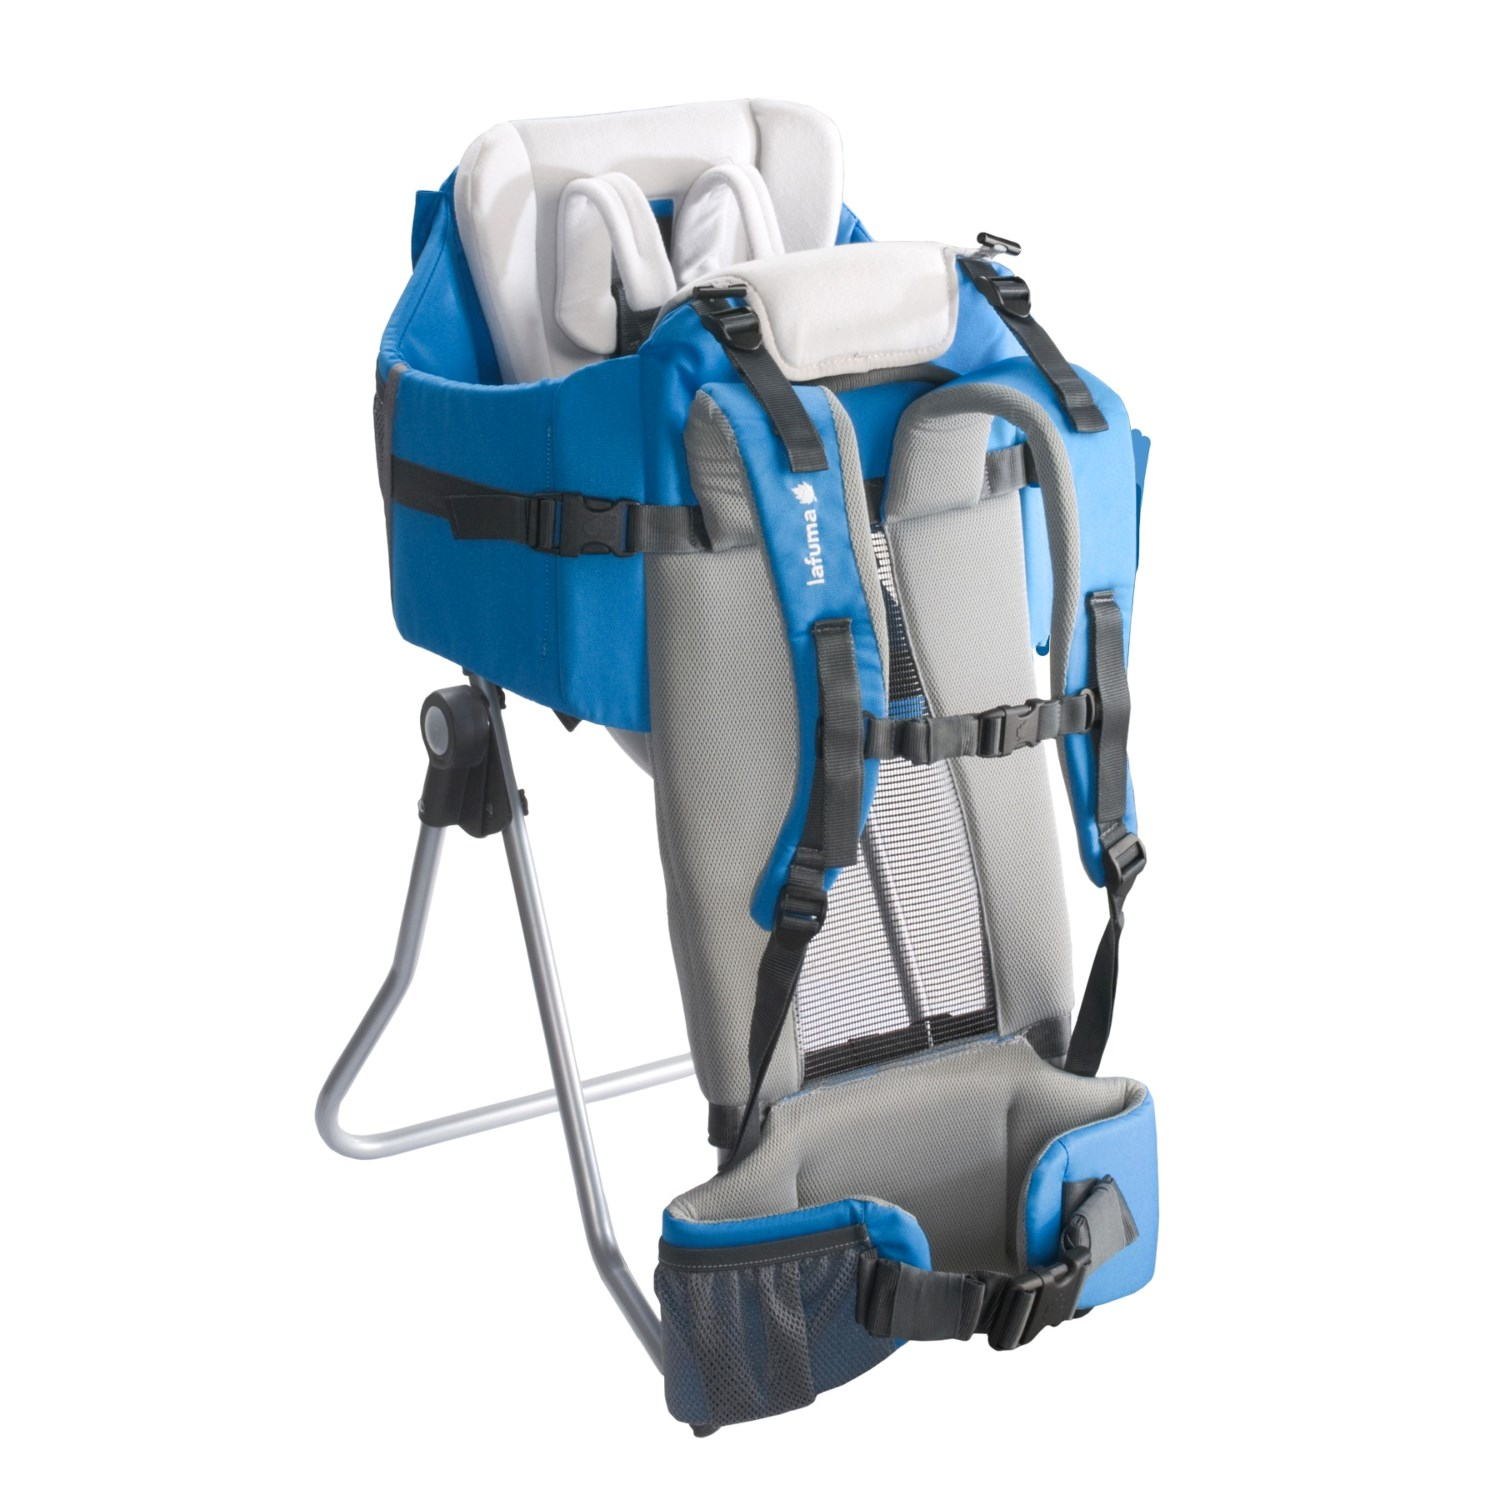 Lafuma Walkid Light Child Carrier 2405P